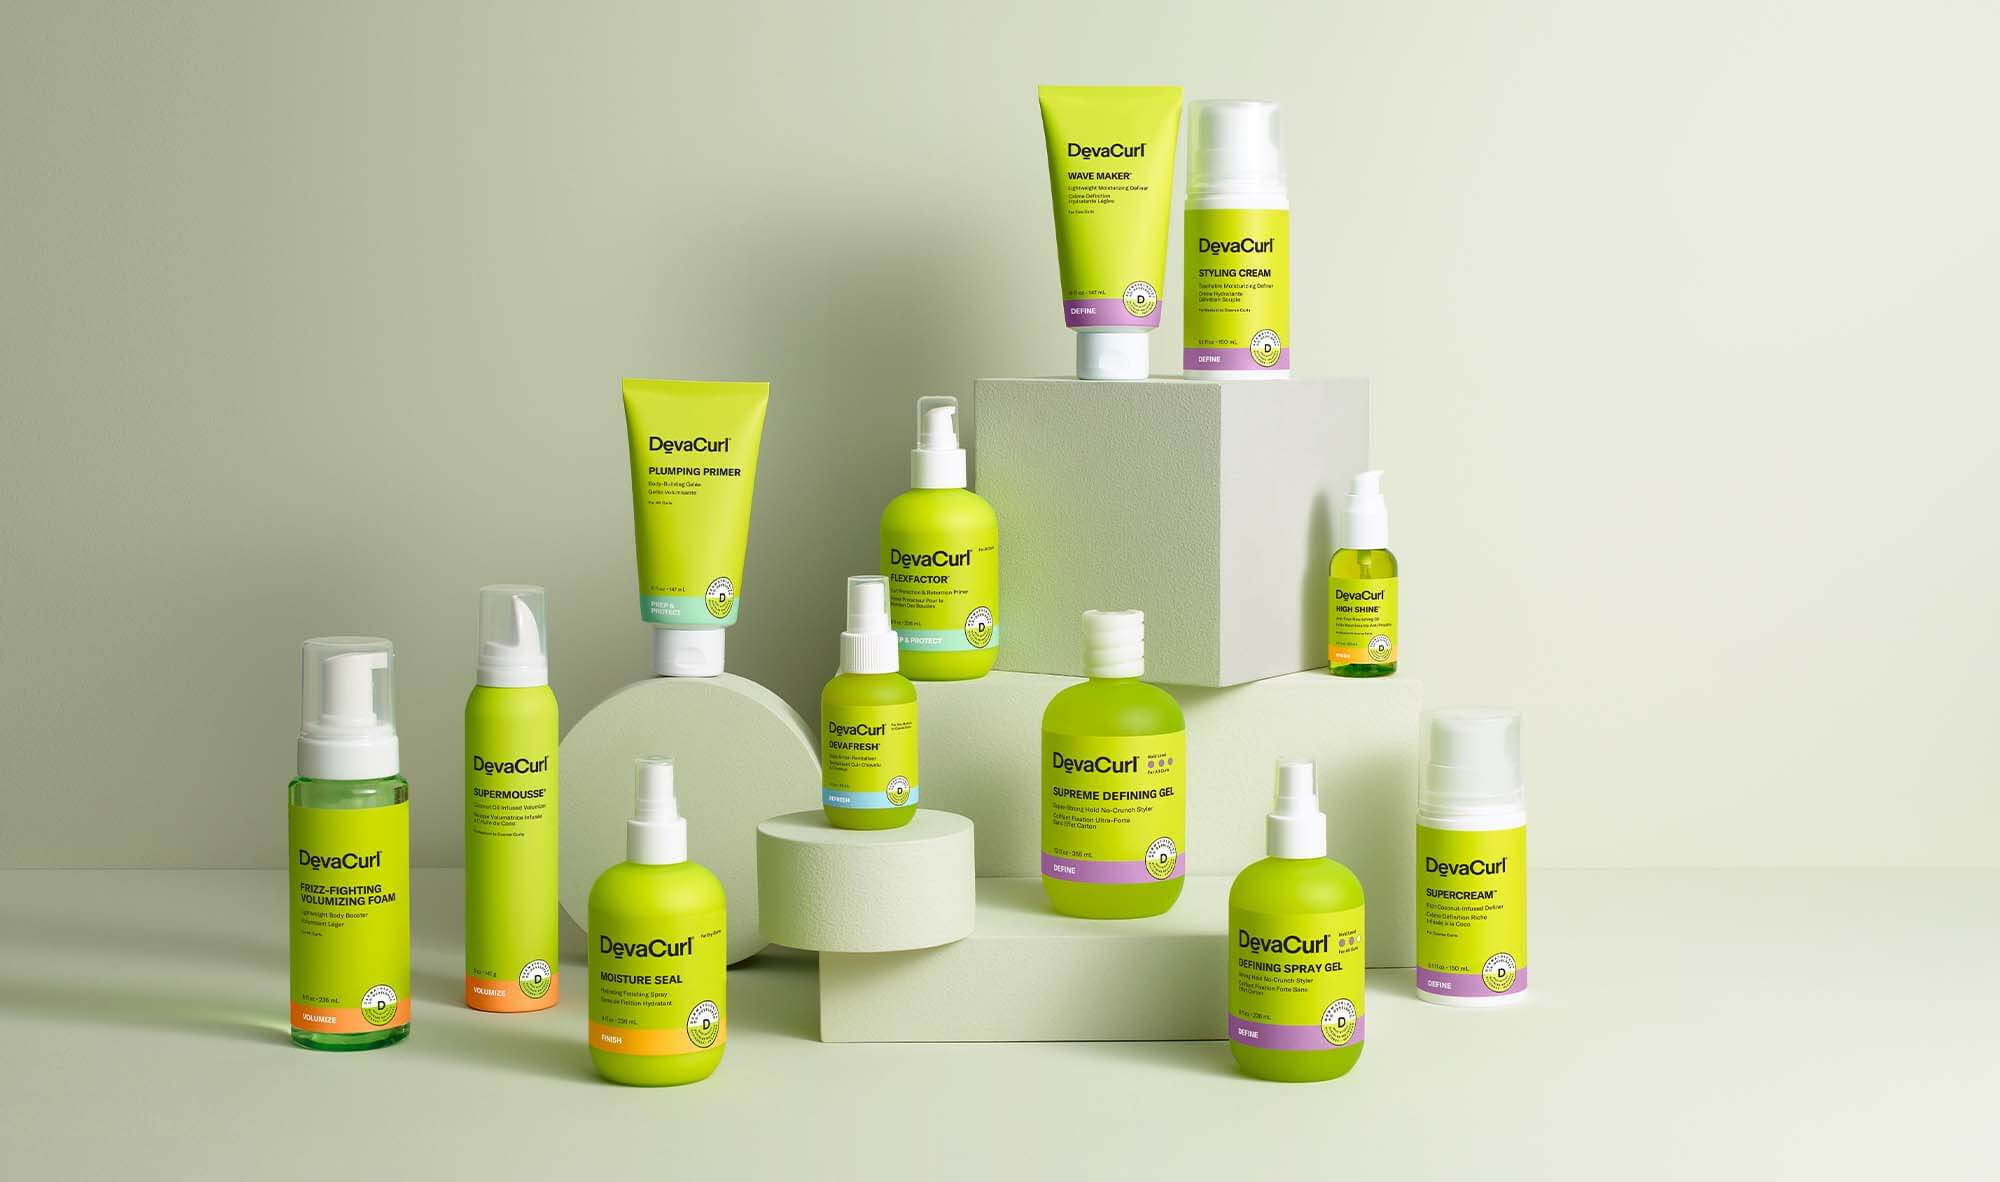 Welcome to the New World of DevaCurl!